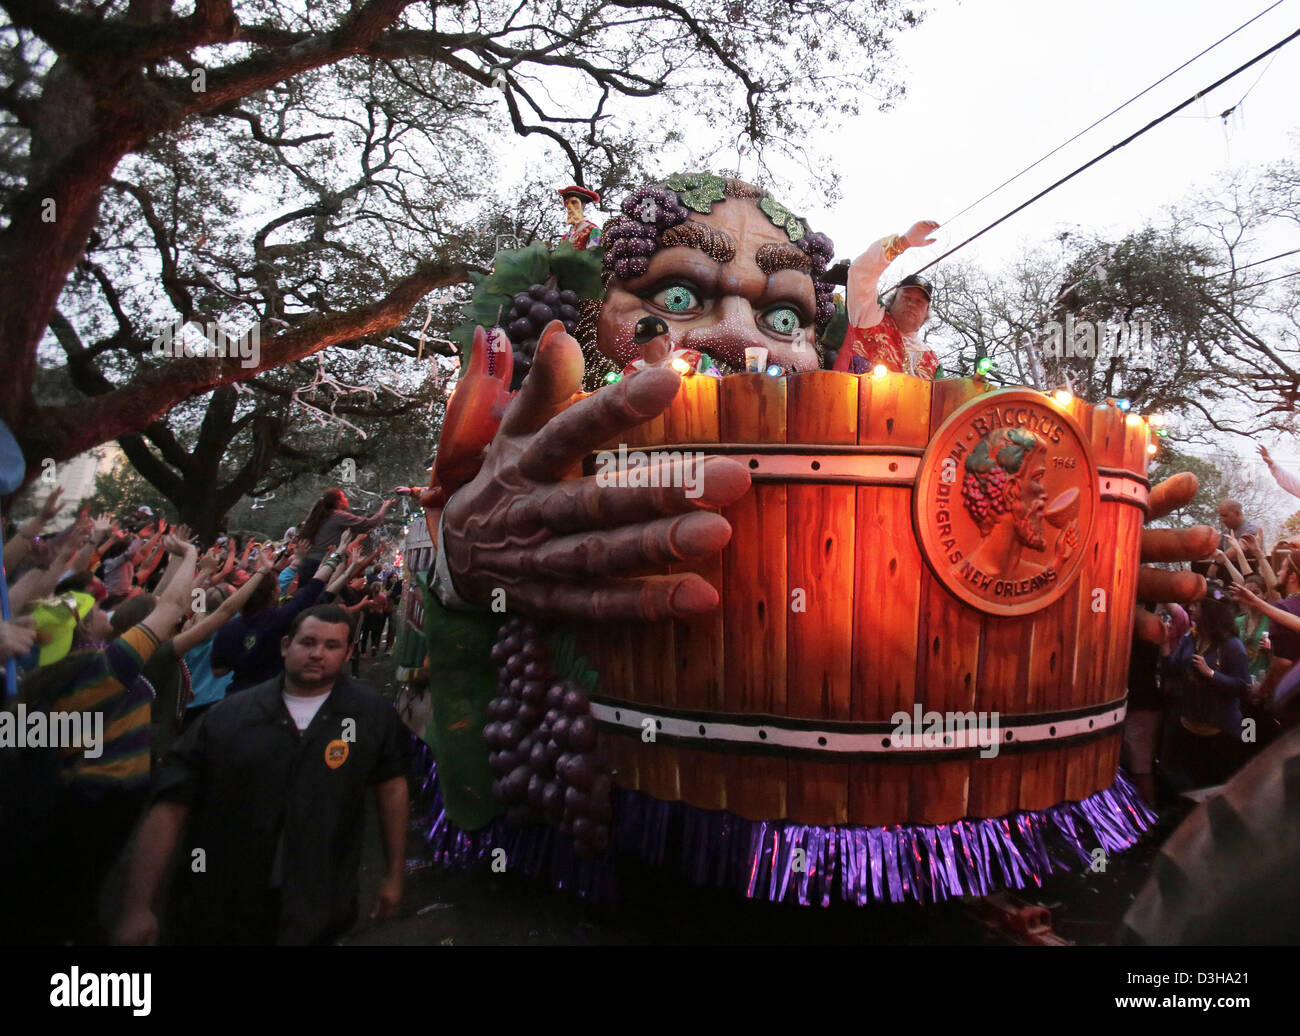 Feb. 10, 2013 - New Orleans, LOUISIANA, UNITED STATES - A float in the Krewe of Bacchus Parade rolls through the Stock Photo